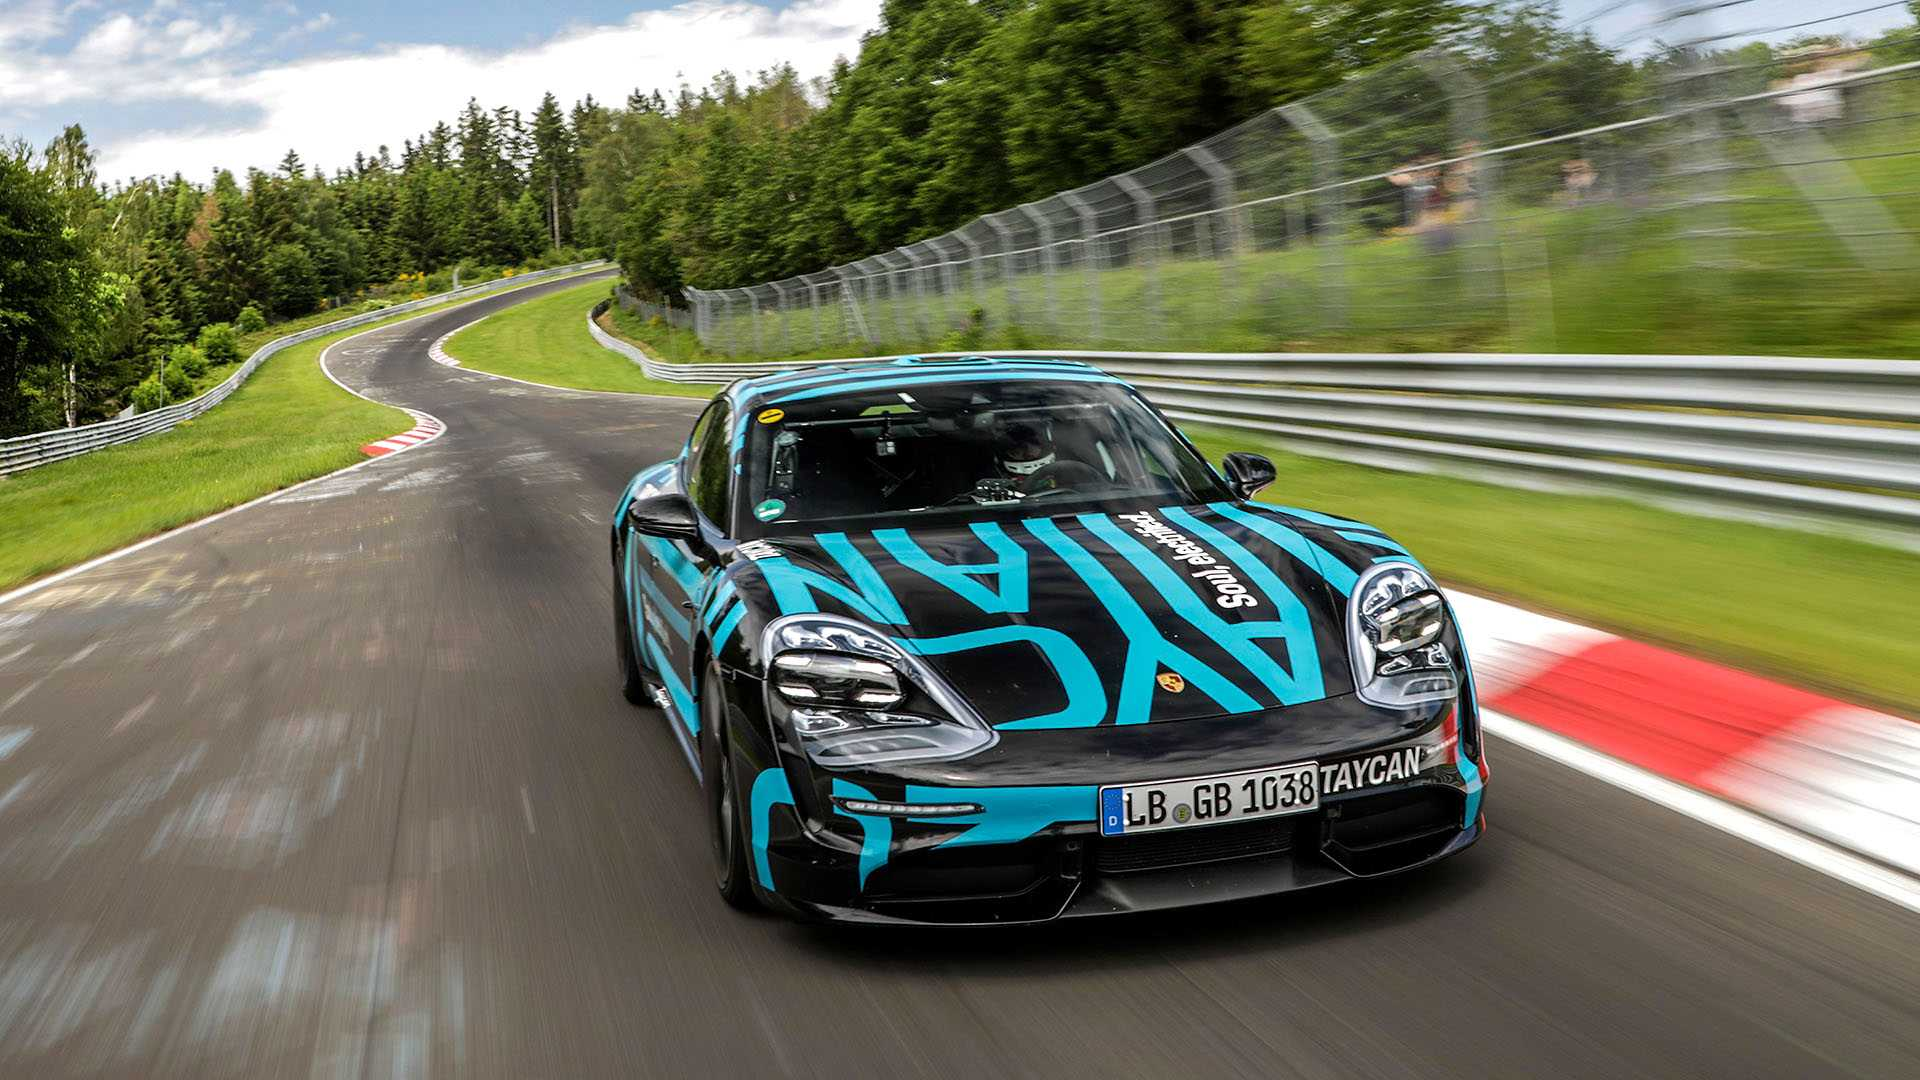 Four Door Sports Cars >> Porsche Taycan Sets New Record For Four Door Evs At Nurburgring